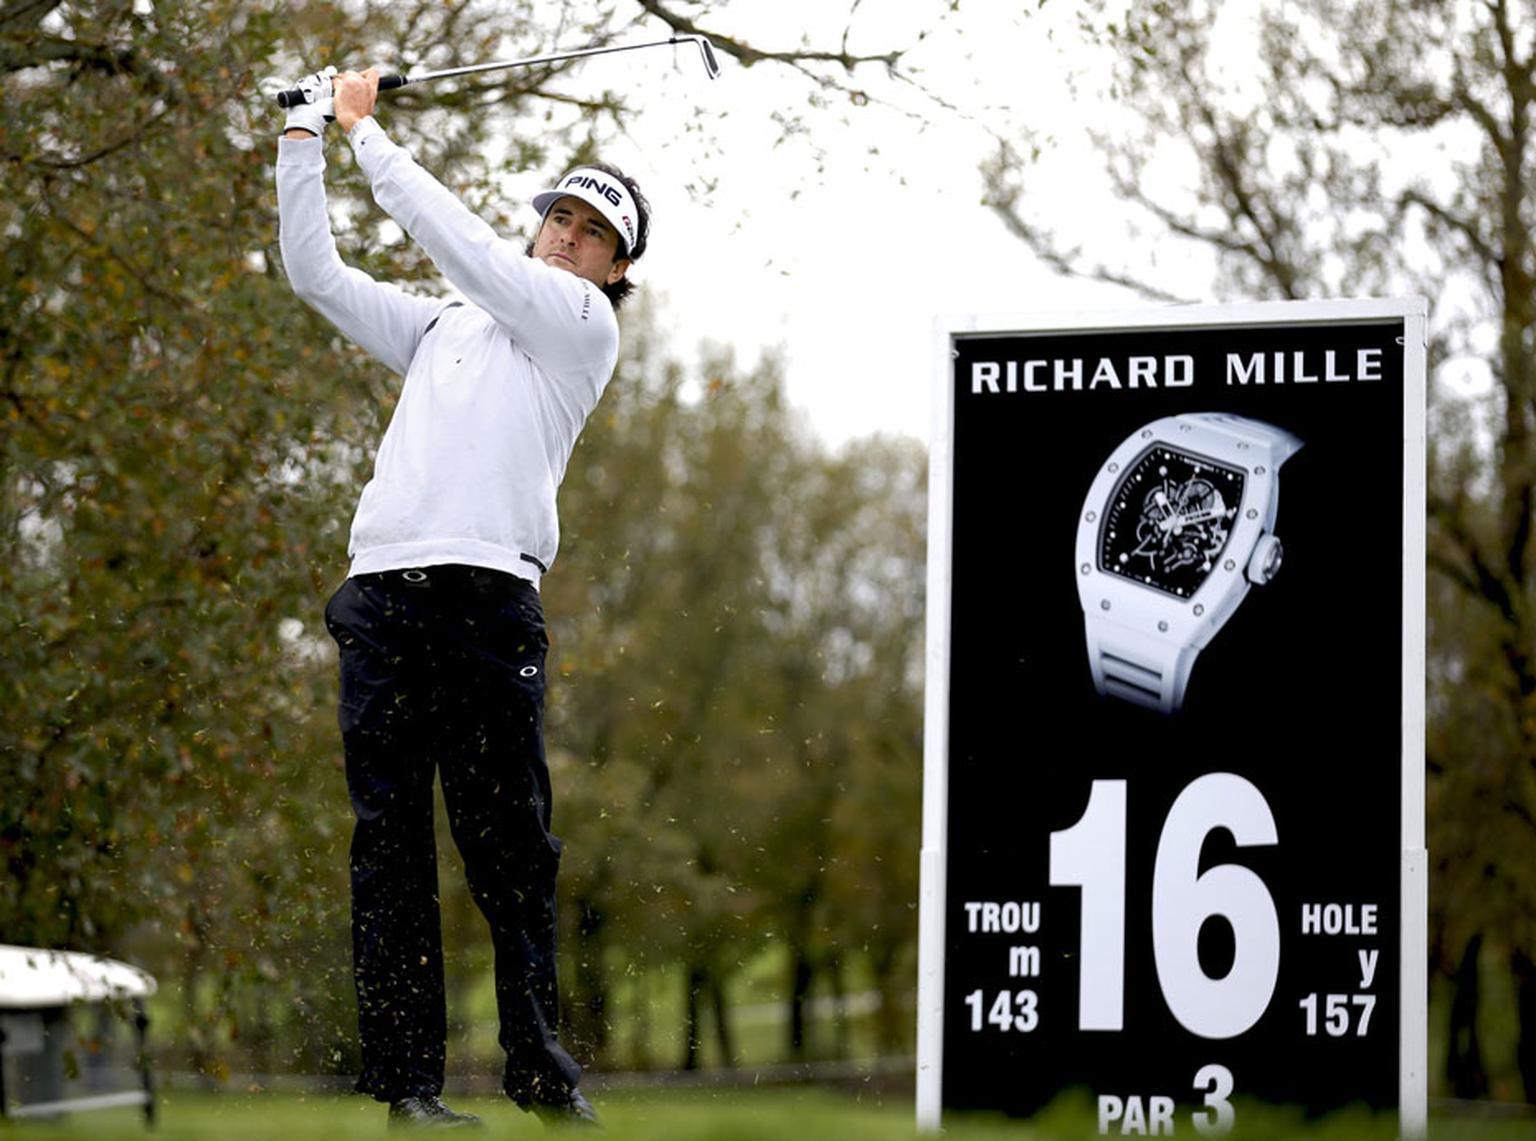 Richard Mille InvitationalGetty Image.jpg